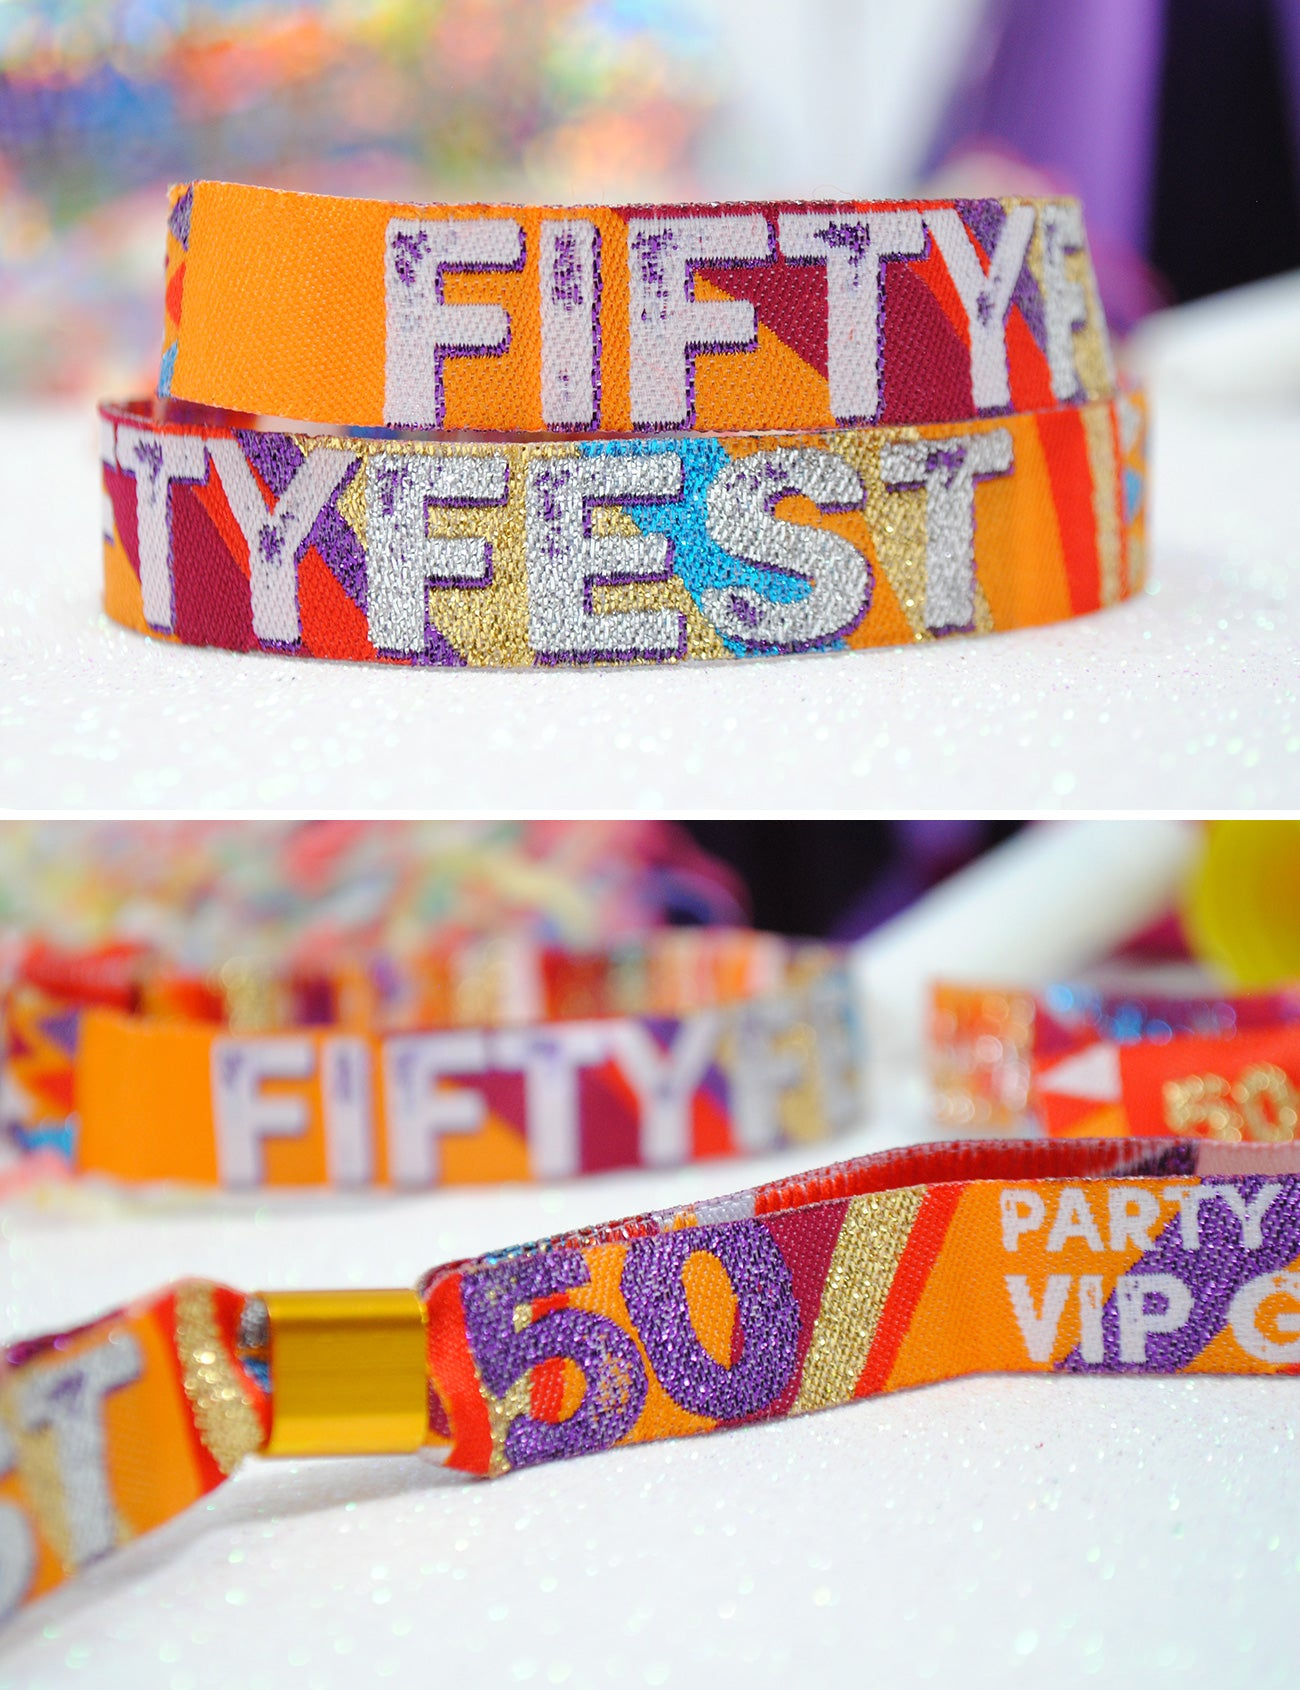 50th birthday festival party wristbands